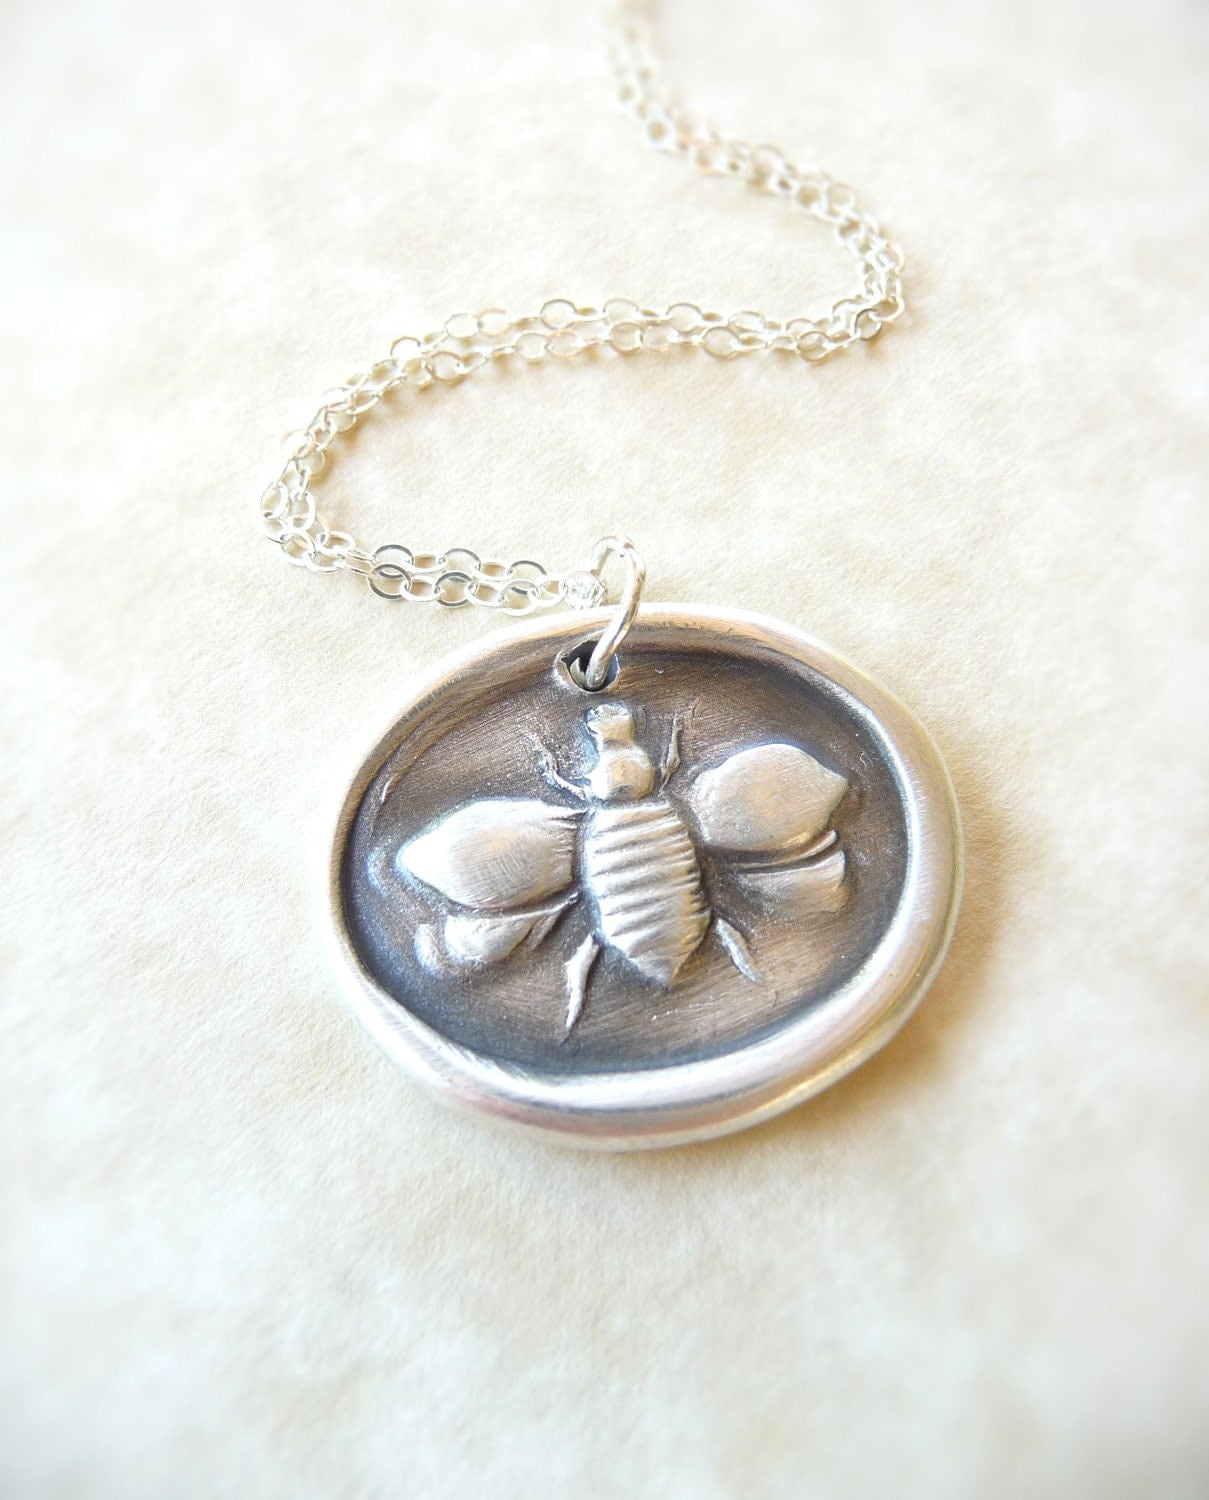 Seal Necklace on Bee Wax Seal Necklace Pendant Jewelry Made From By Dreamofadream